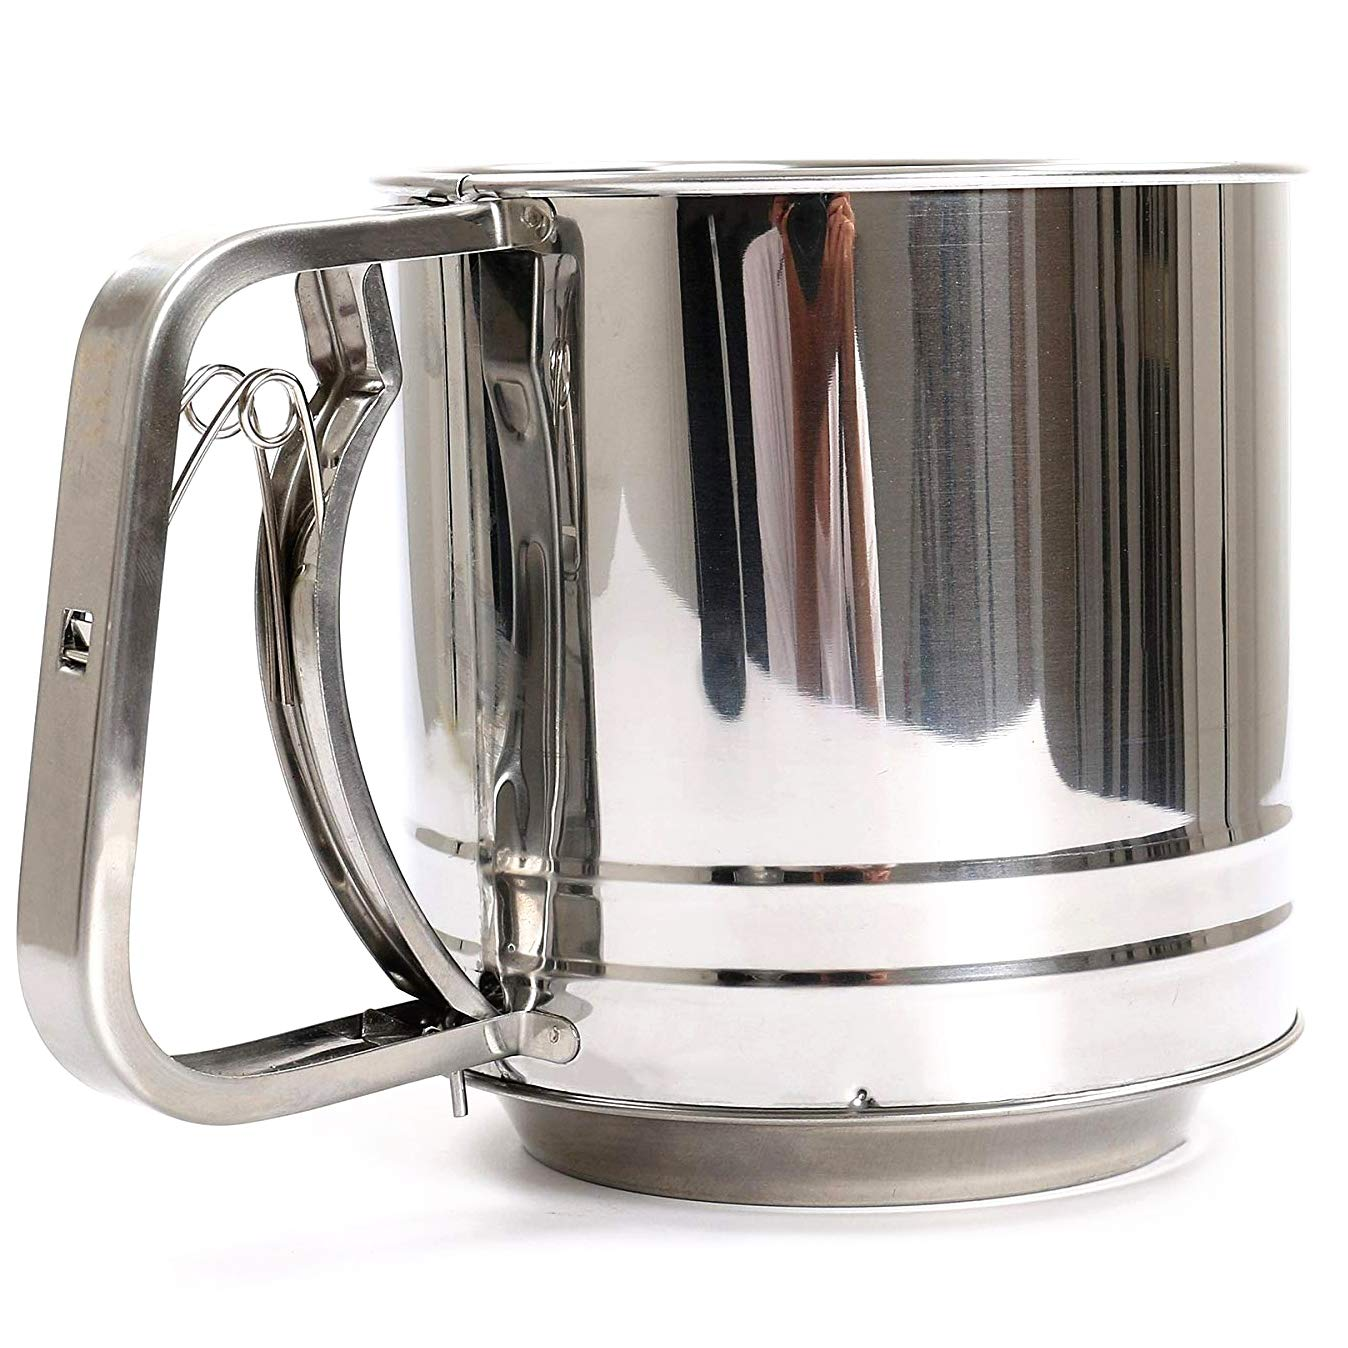 NPYPQ Flour Sifter, Stainless Steel Flour Sieve Sifters Mesh Cup - One Hand Crank - Very Fine - Large A - 1275